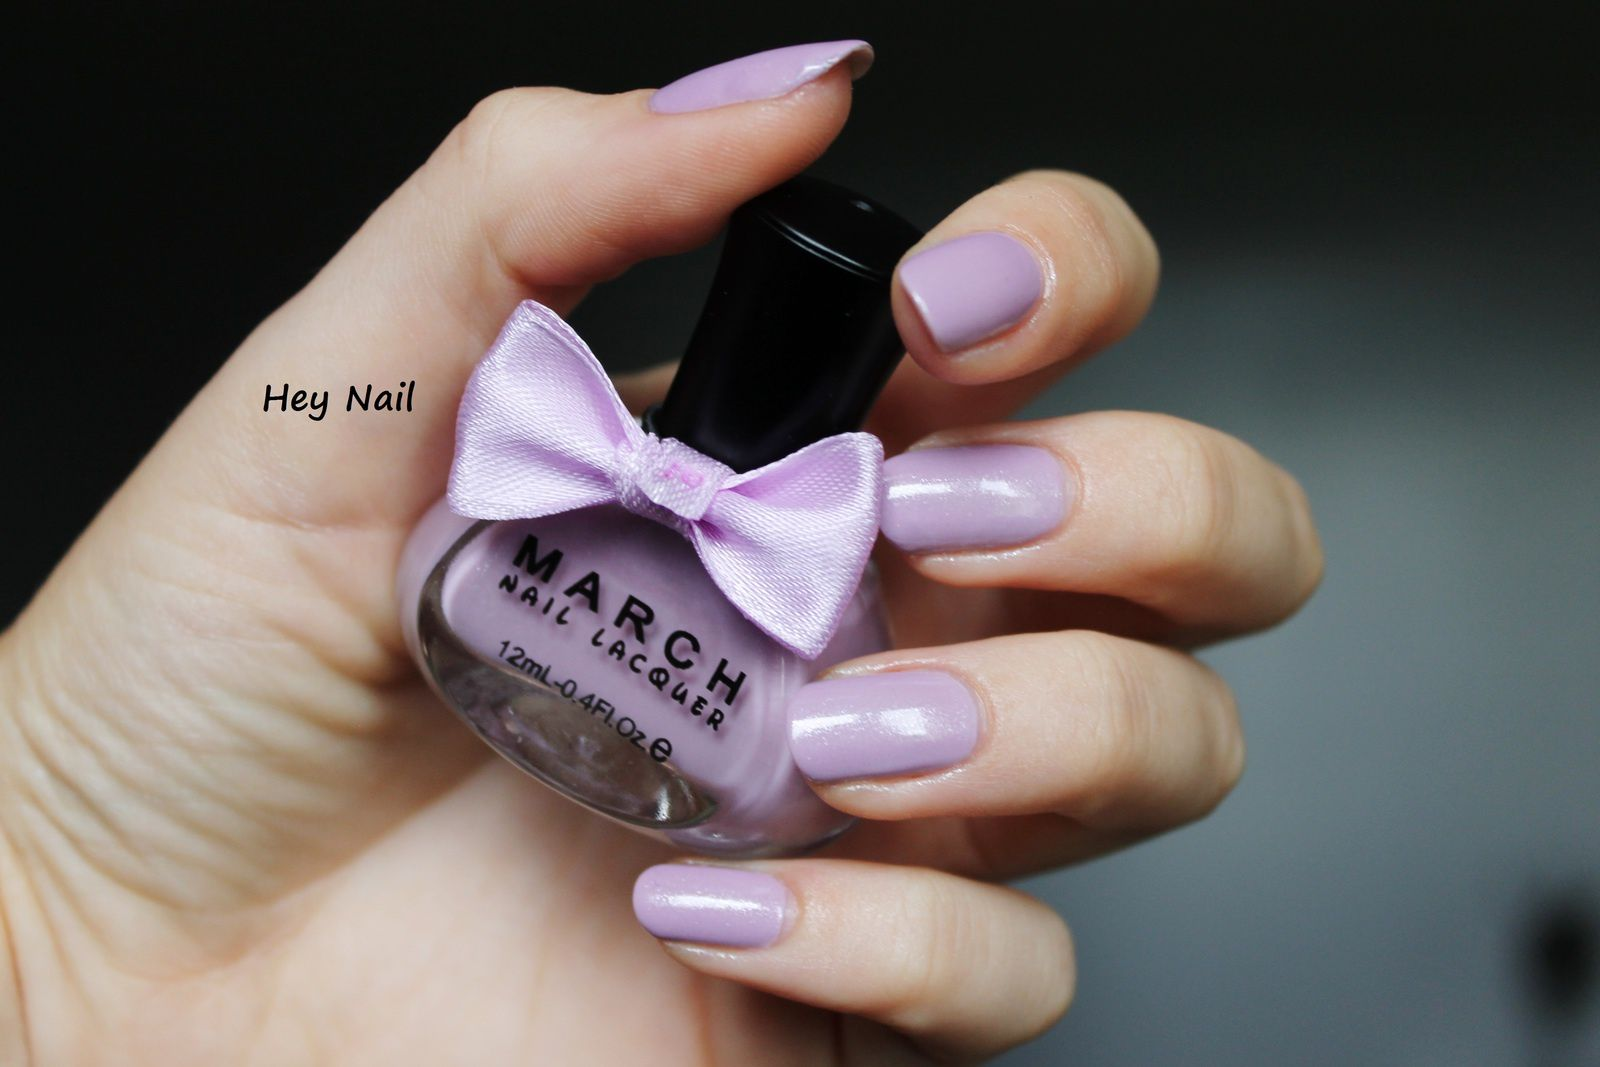 March Nail Lacquer - Violet Clair